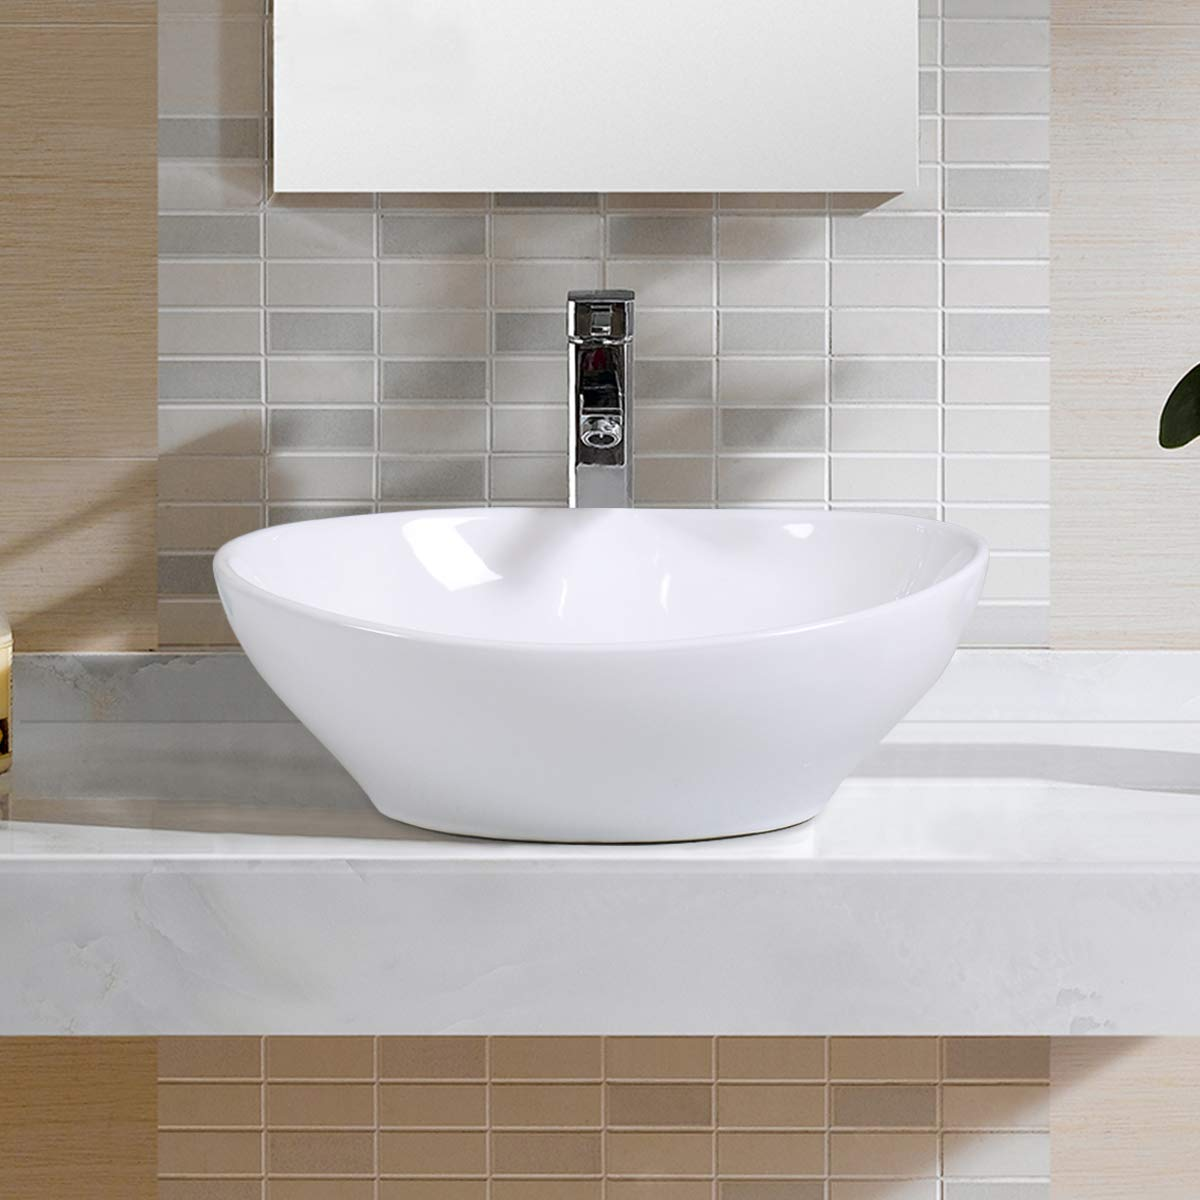 3 4 Bathroom Artistic Glass Vessel Vanity Sink CH9079 Free chrome pop up Drain Mounting Ring